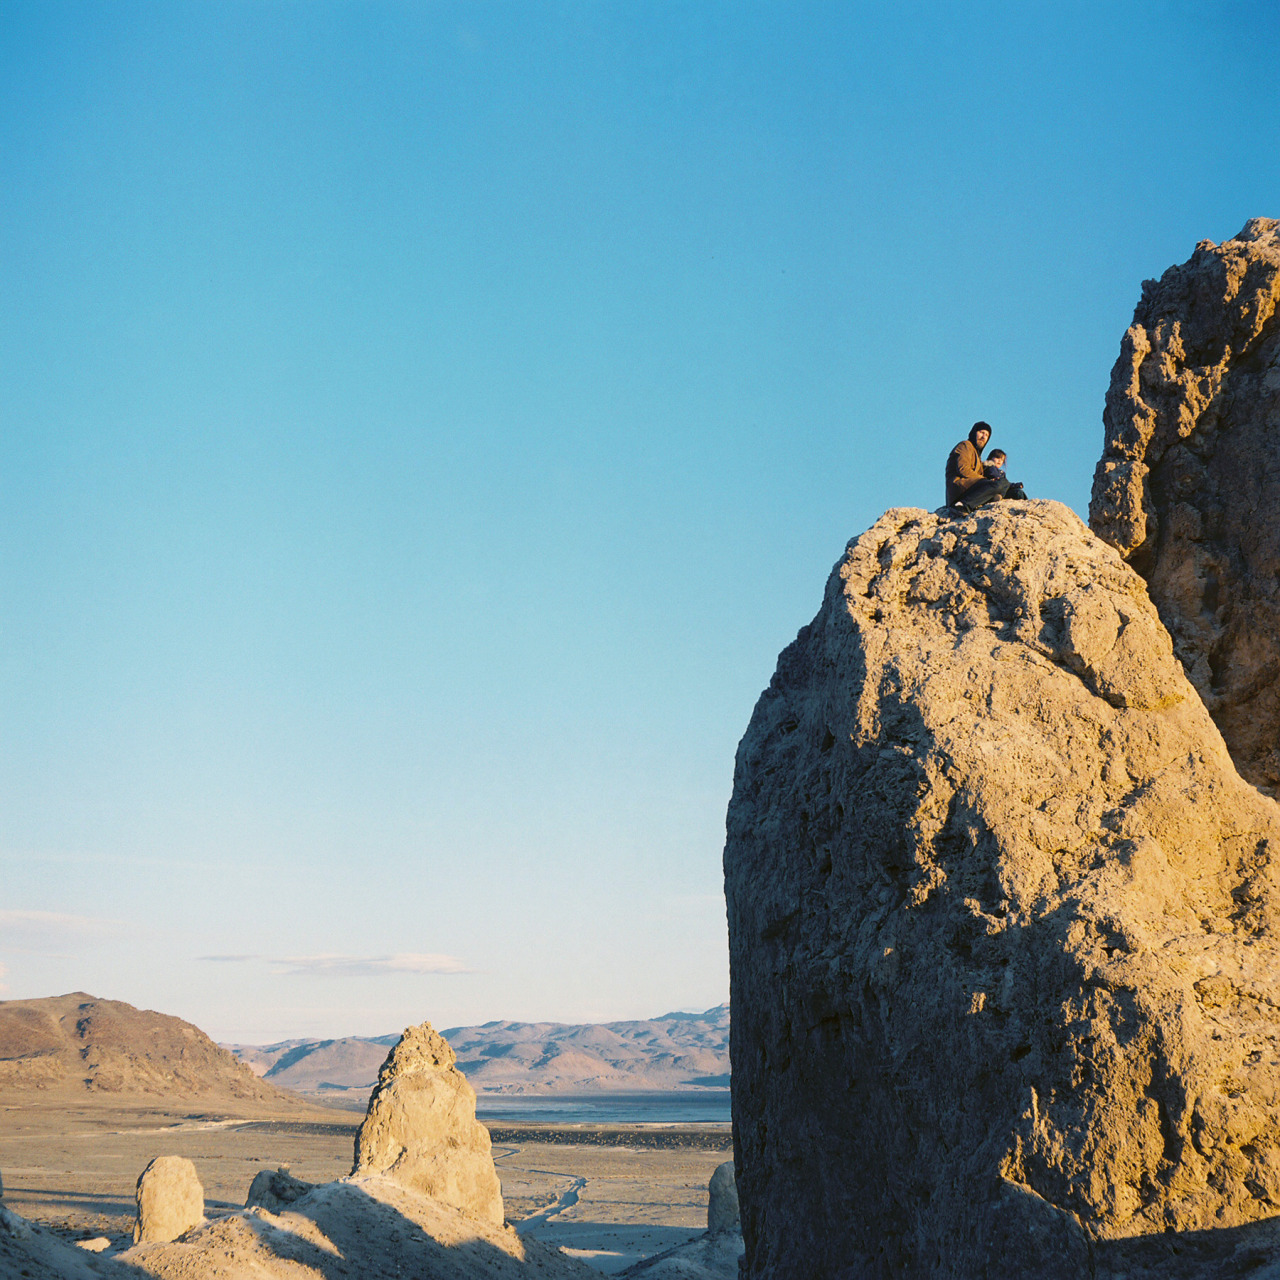 trona pinnacles trona, ca february 2013  This past February, I spent a week wandering around my hometown in the desert. Here is the first part of what I came back with.